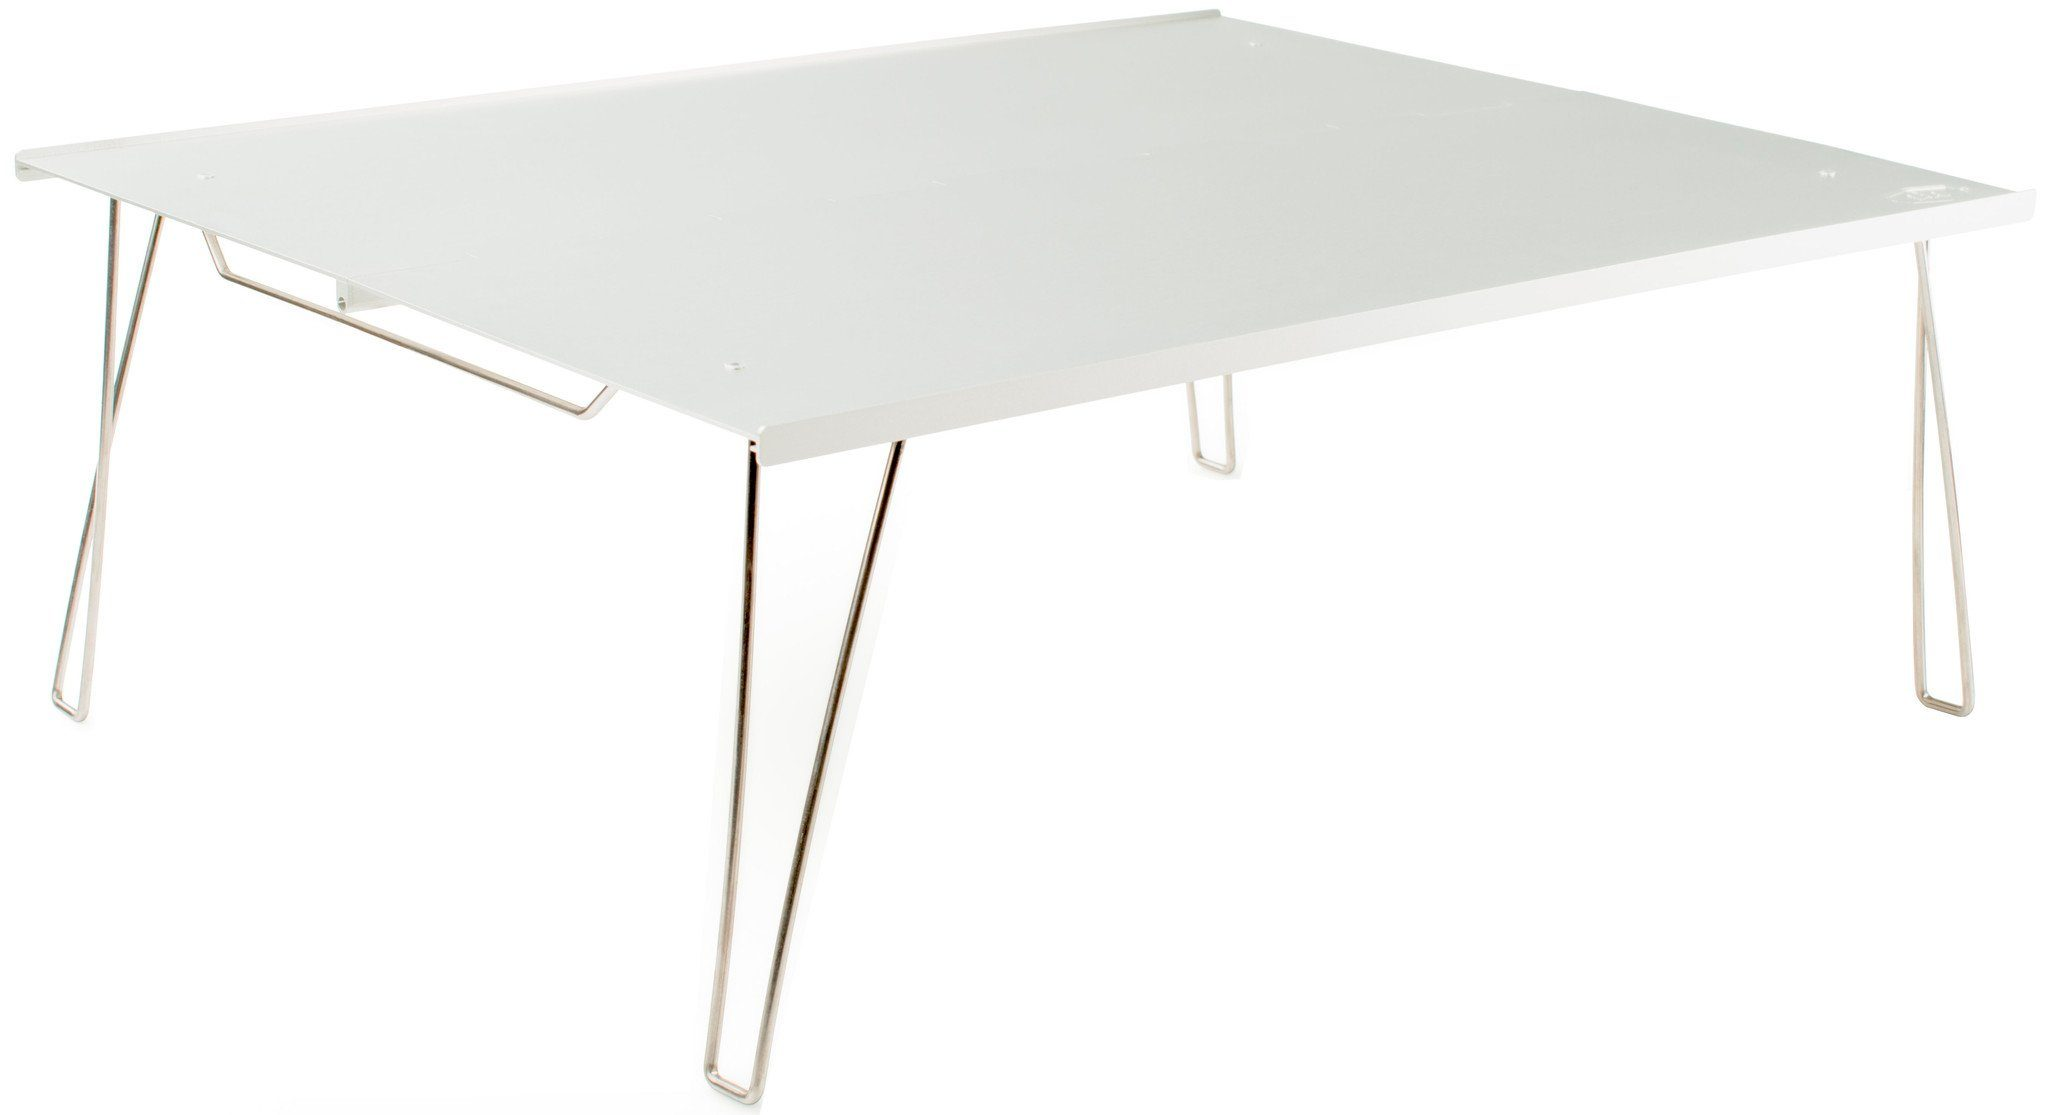 GSI Camping Tisch »Ultralight Table Large«